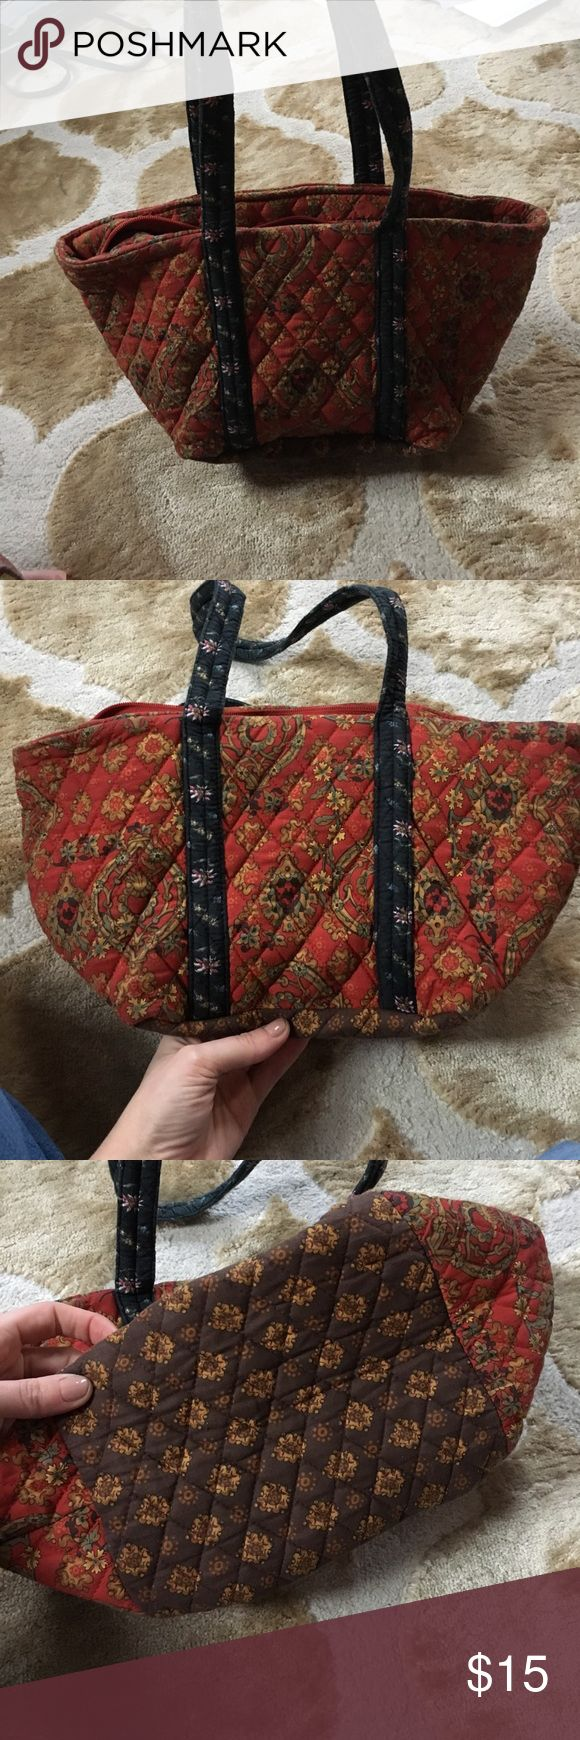 "Fall colors quilted bag 7.5"" x 8.5"" should bag. Cotton. Easily washed in the washing machine. Pet and smoke free home. Bags Shoulder Bags"